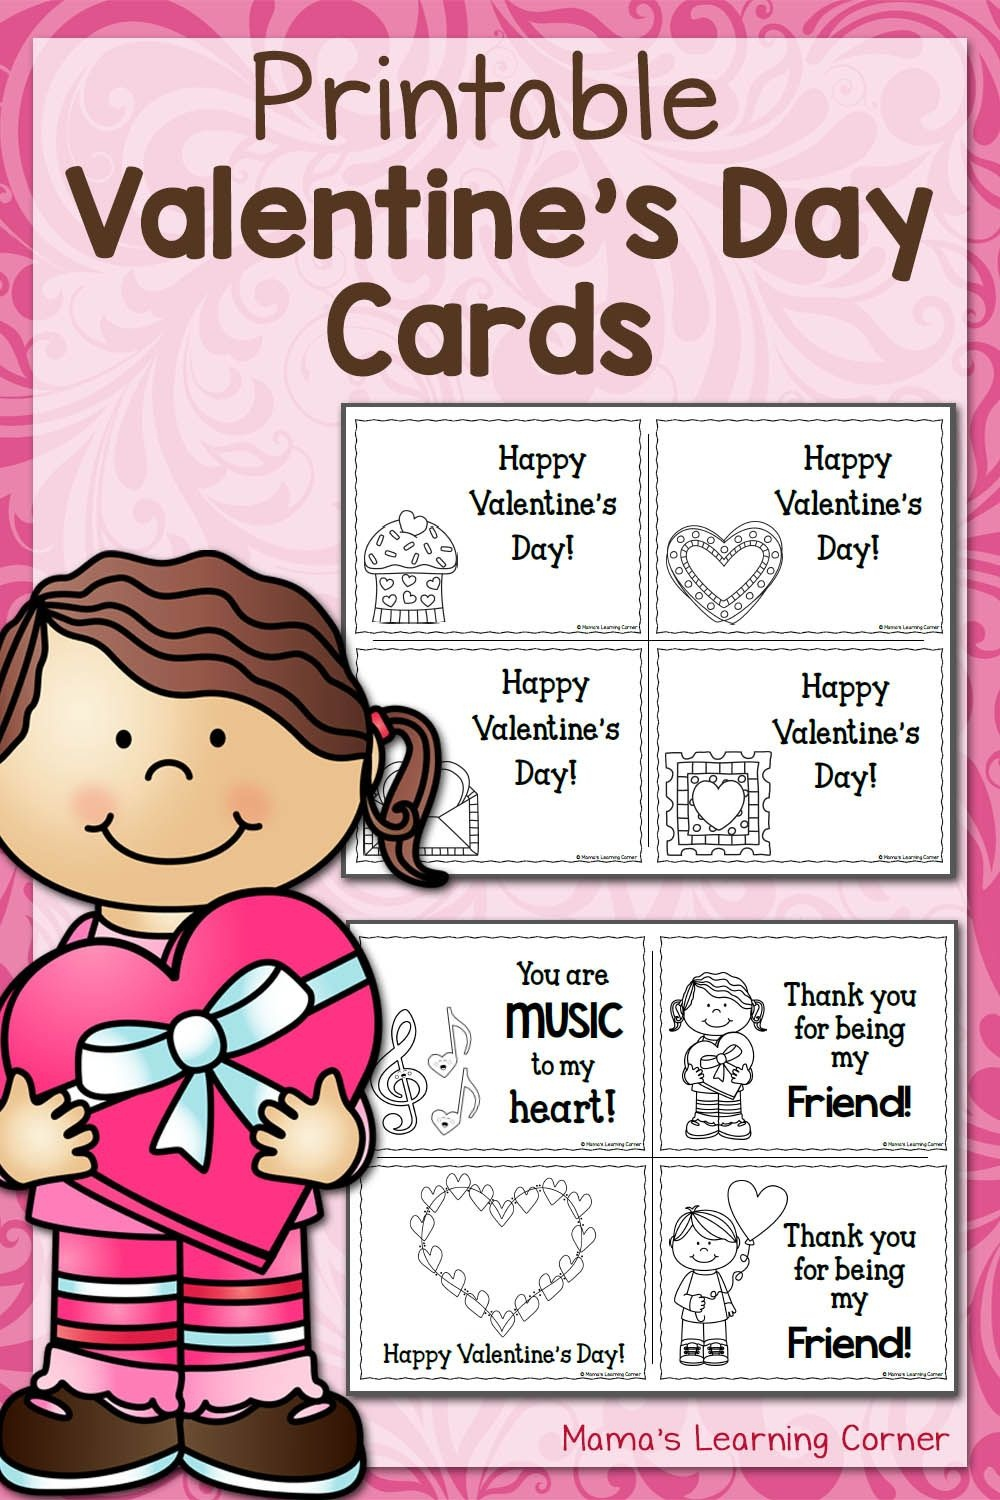 Printable Valentine's Day Cards | Best Of Mama's Learning Corner - Free Printable Childrens Valentines Day Cards